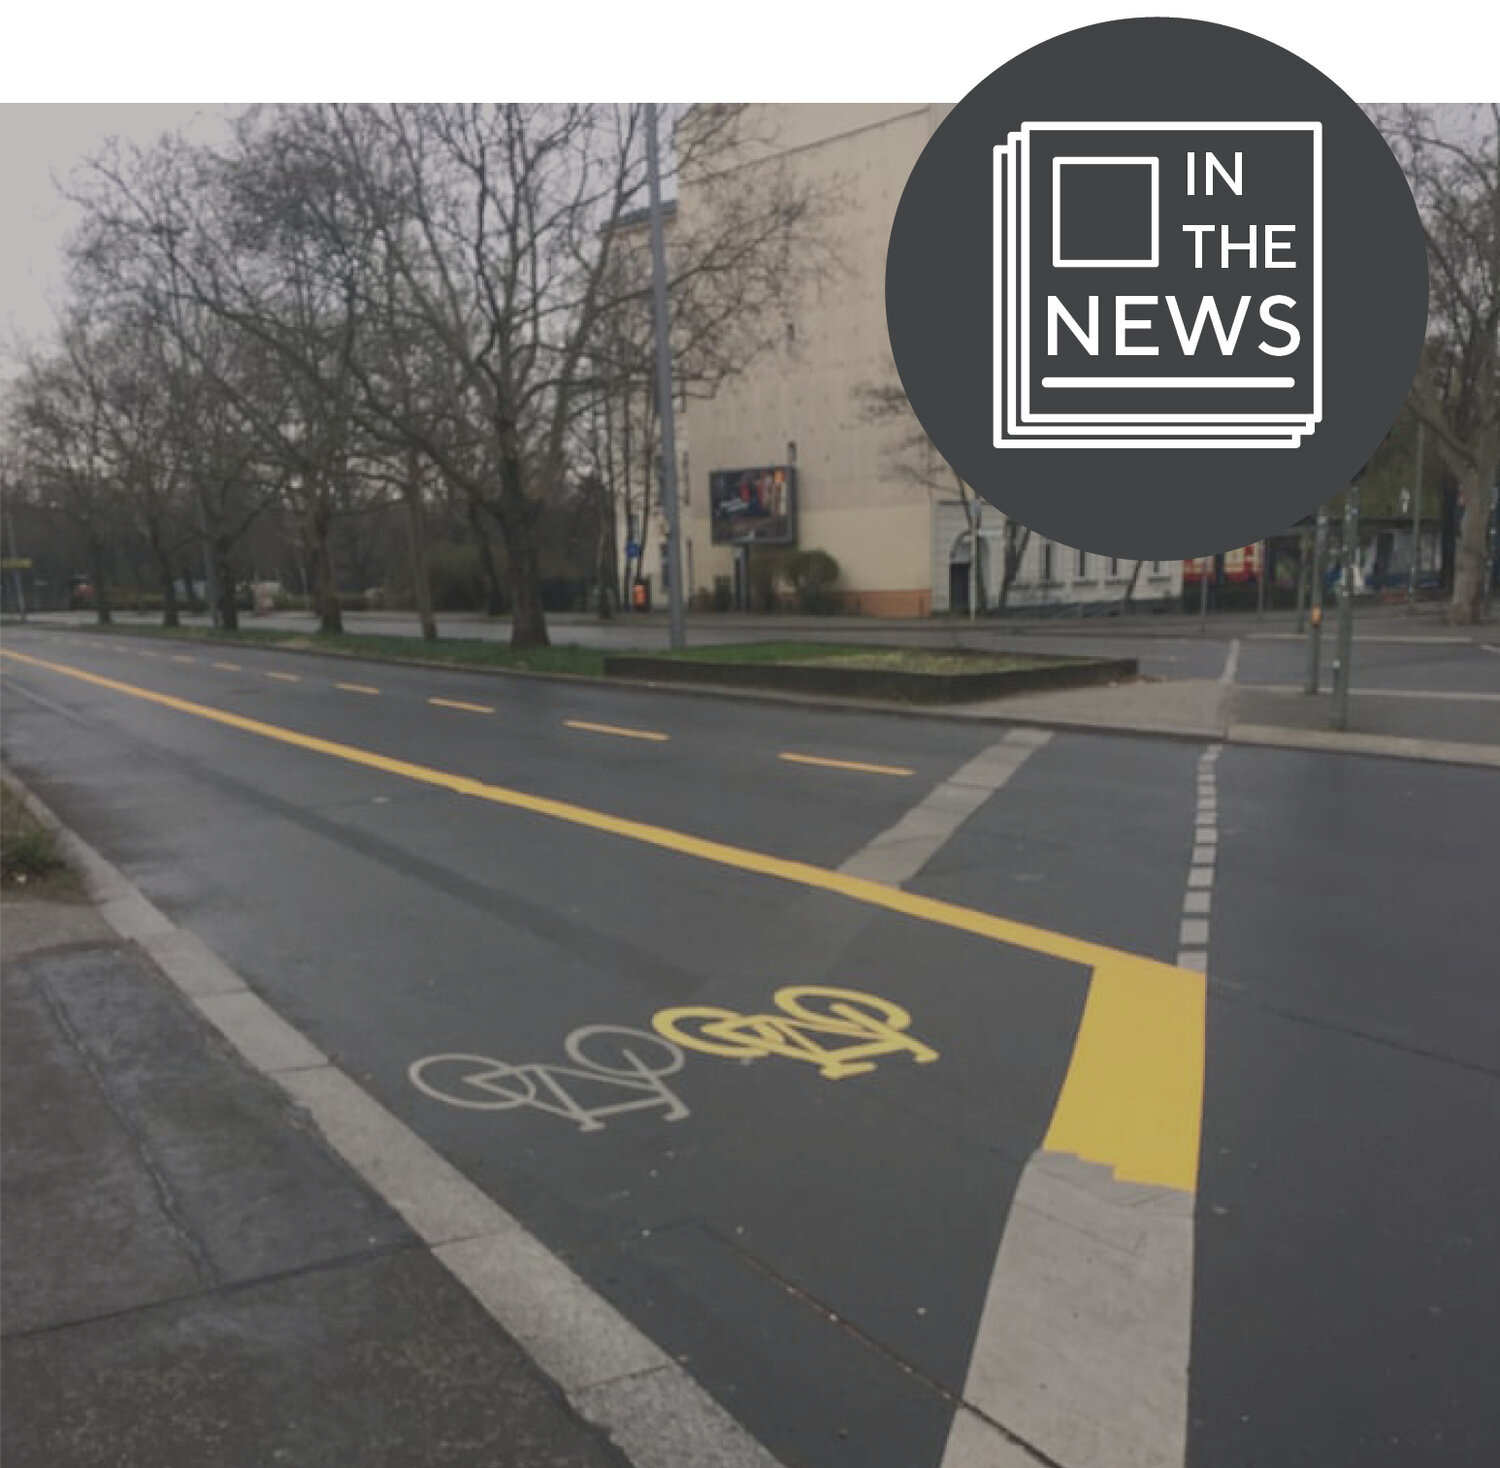 One of Berlin's extended bike lanes. Source: The Guardian